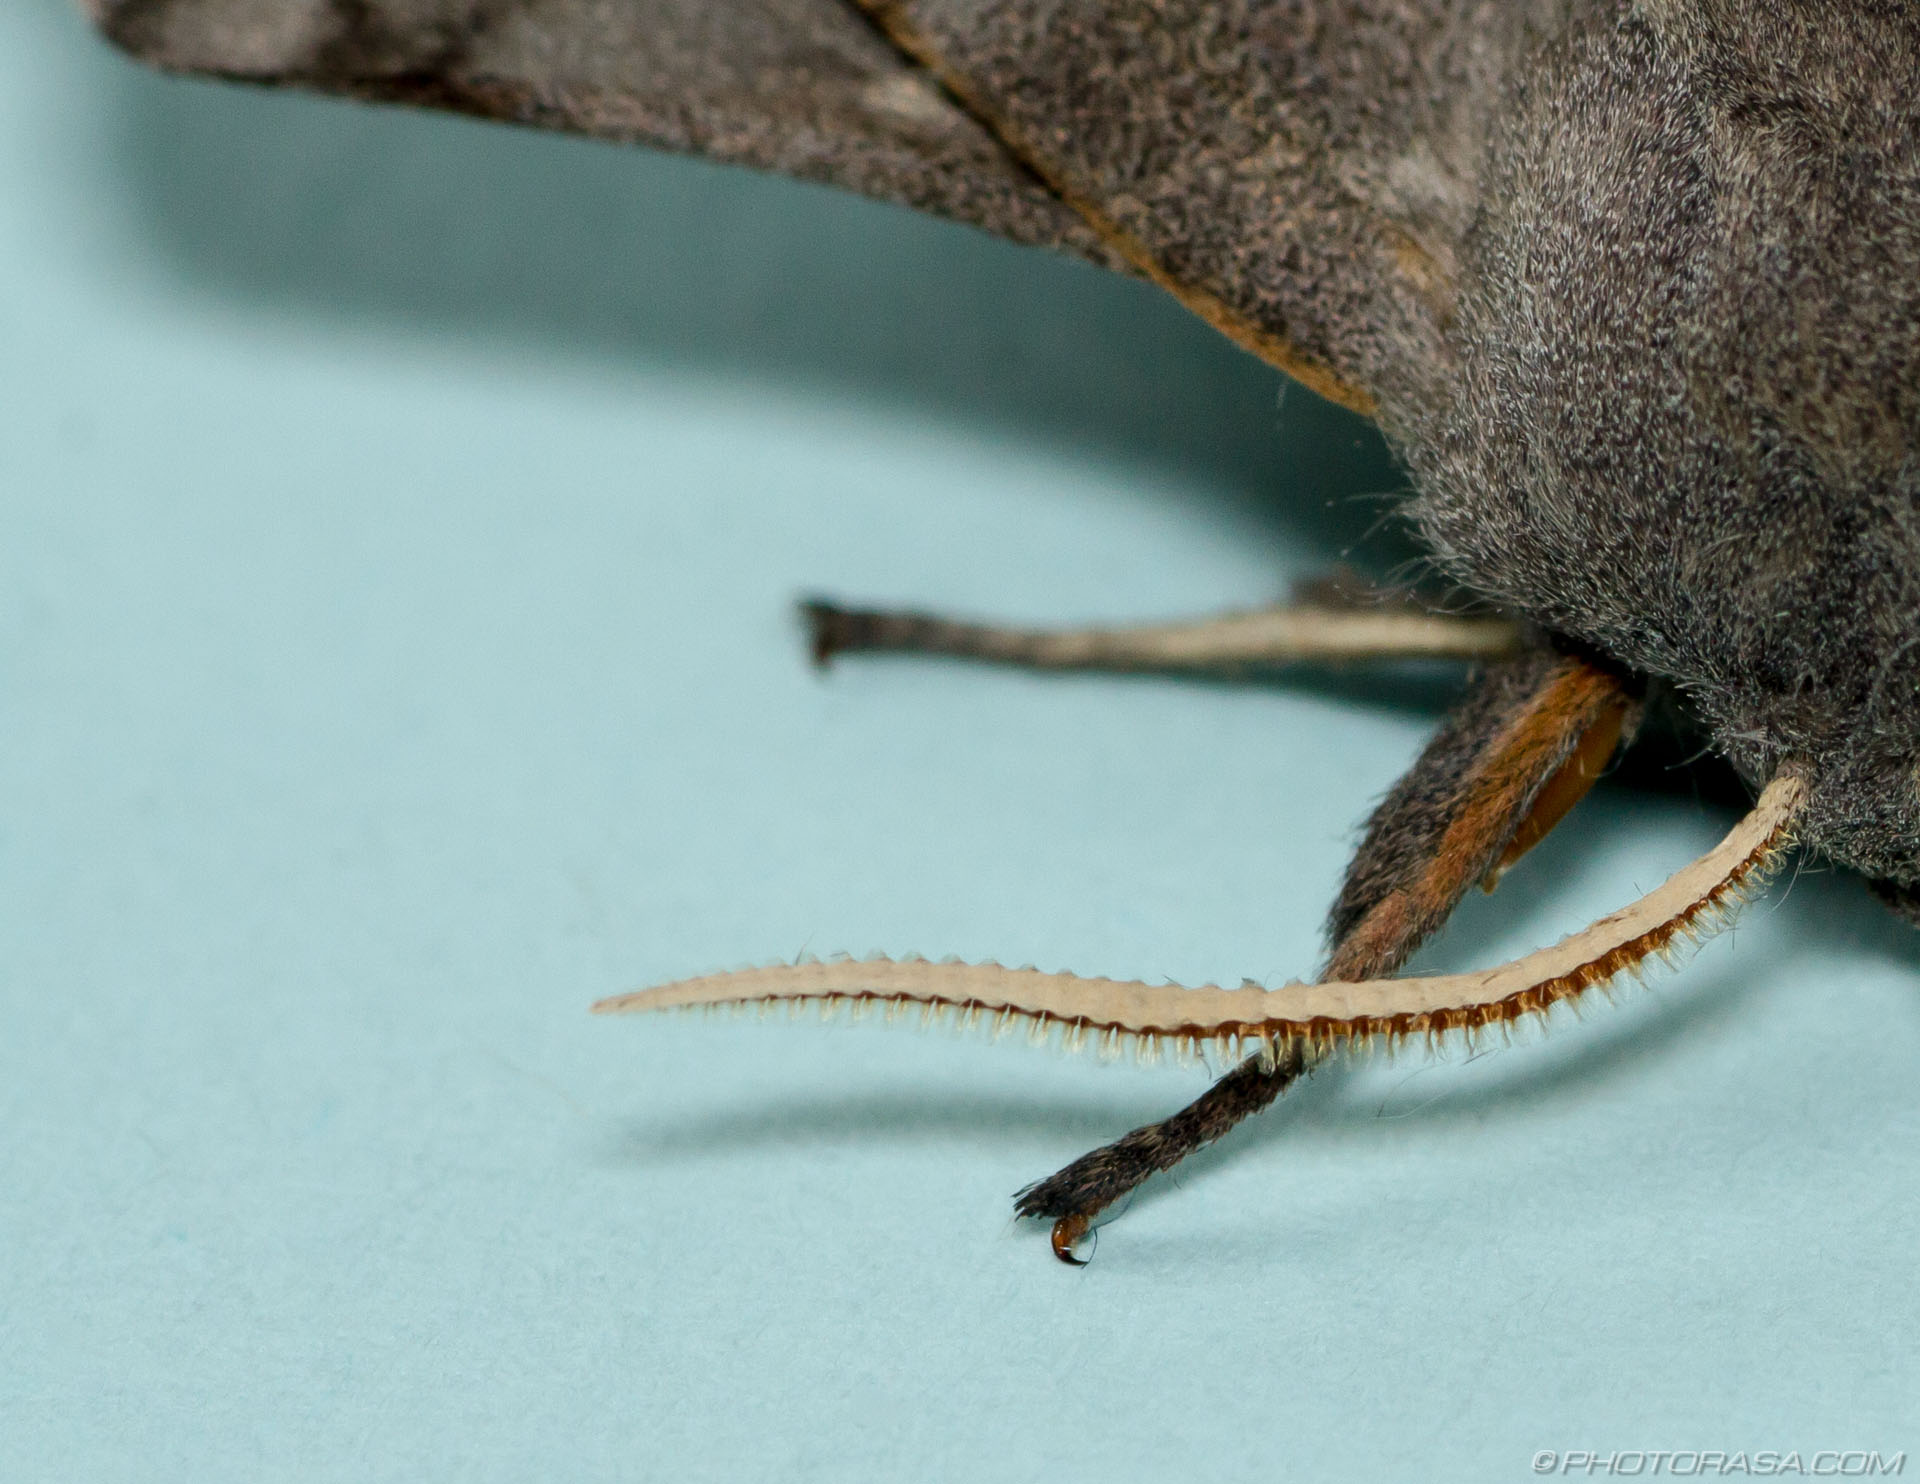 https://photorasa.com/poplar-hawk-moth/close-up-of-antenna/